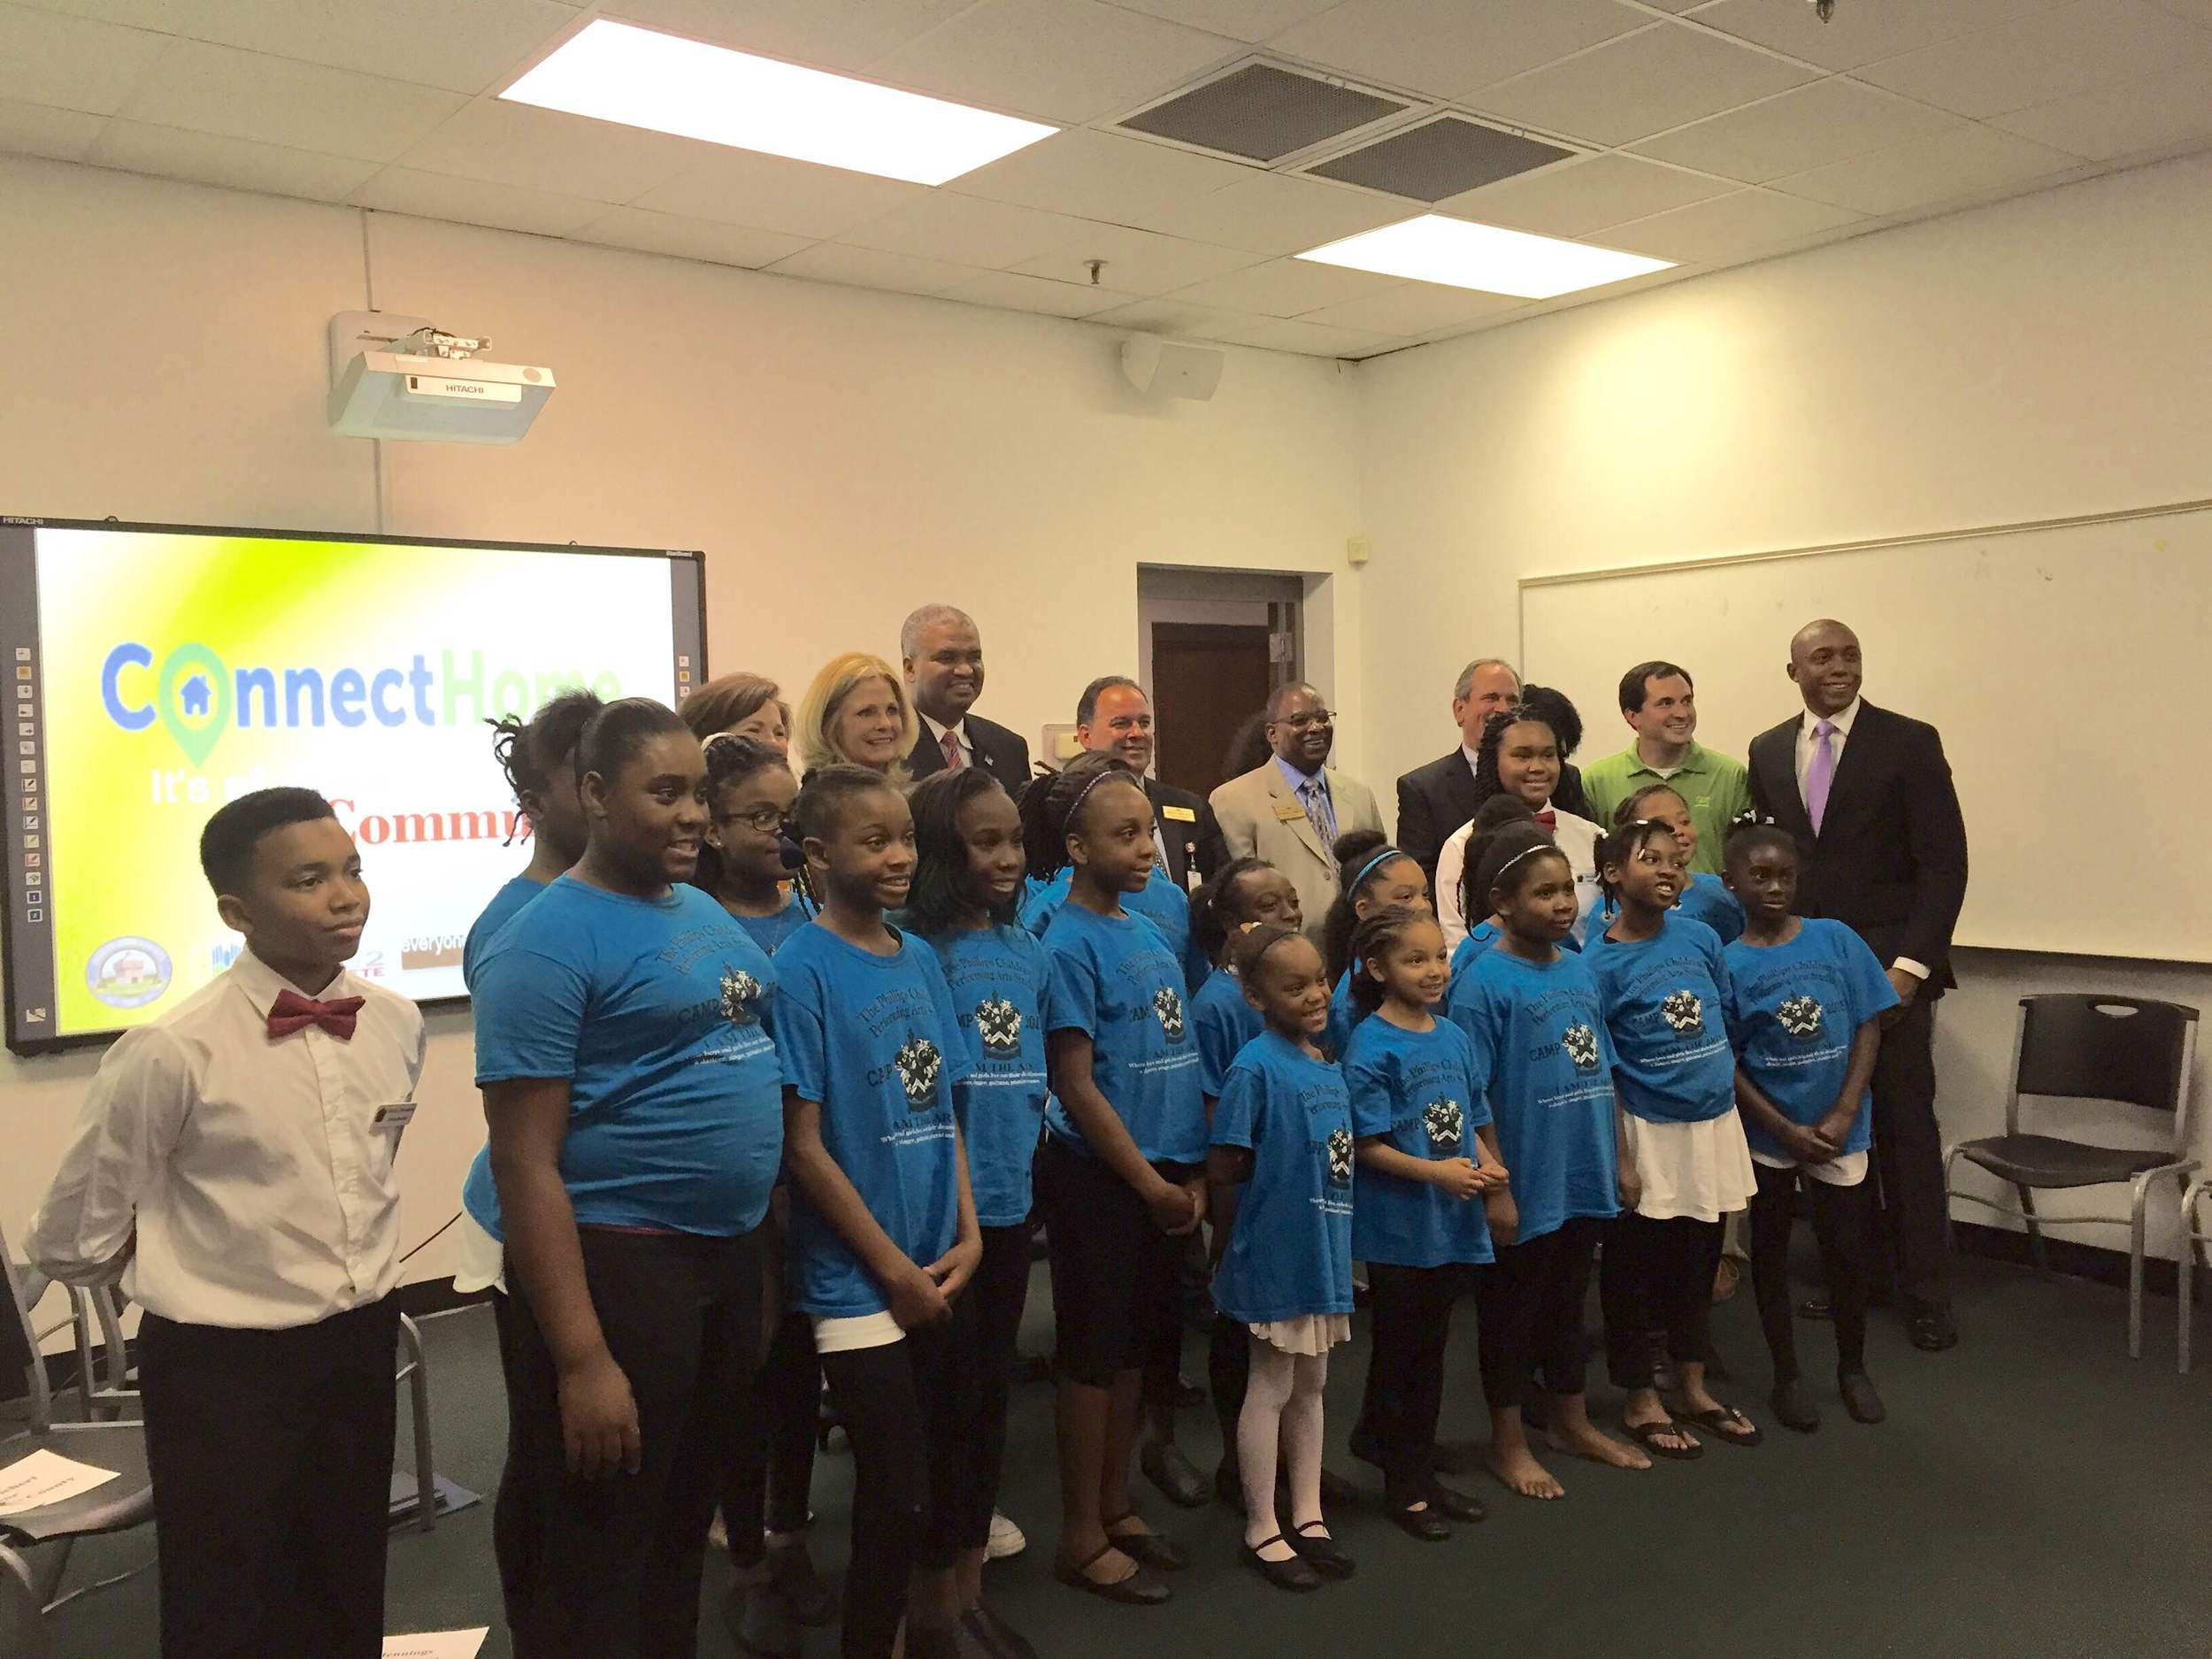 Chike celebrates with students at the launch of the ConnectHome initiative in Macon. EveryoneOn serves as the non-profit lead for ConnectHome and works on the ground in cities like Macon to help all Americans get online.